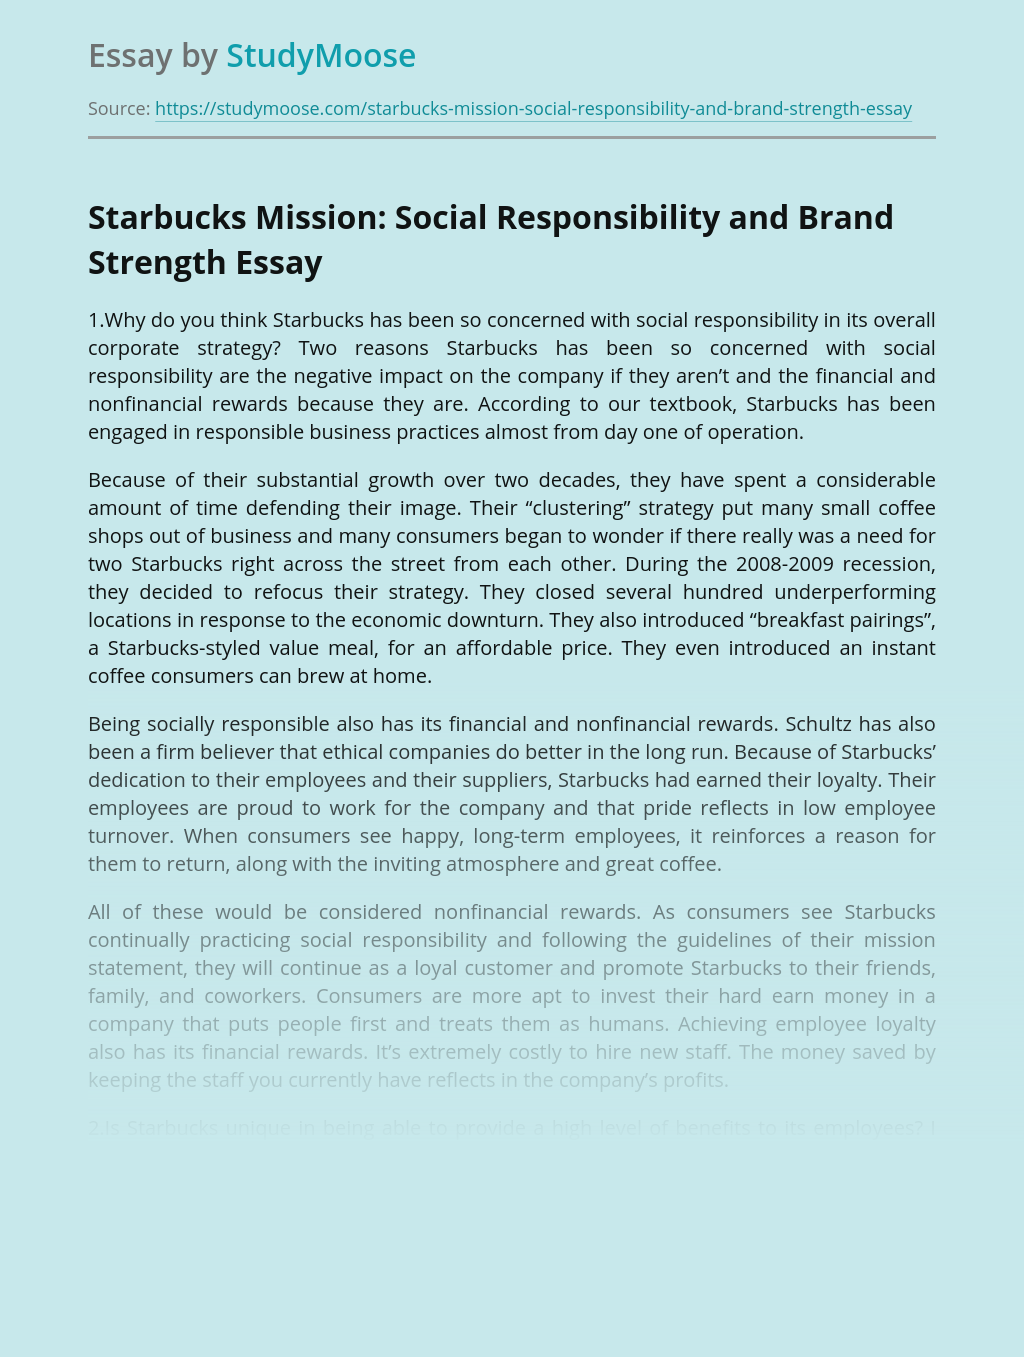 Starbucks Mission: Social Responsibility and Brand Strength